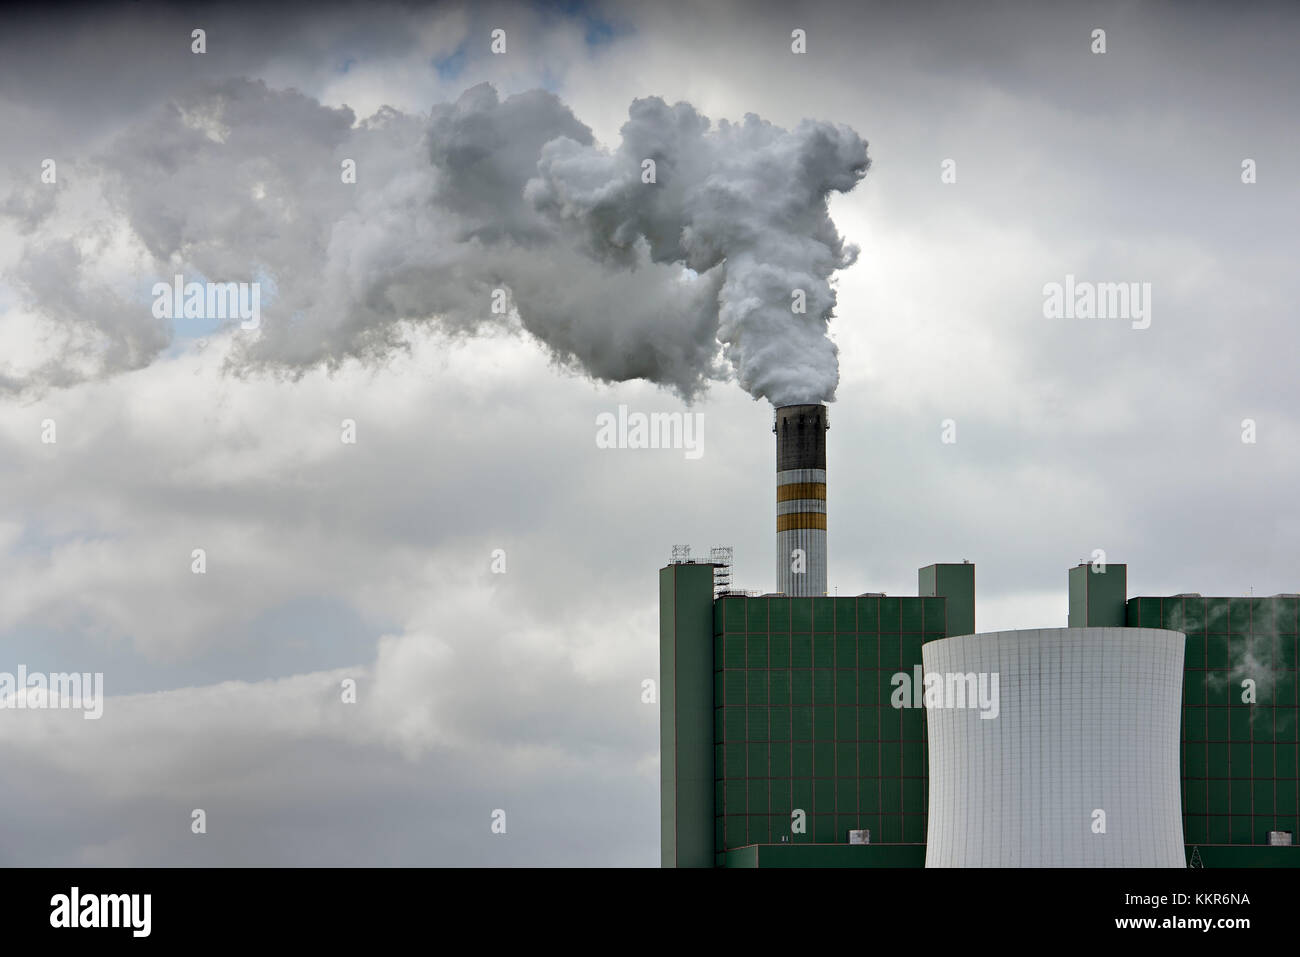 Brown coal power station at Schkopau, smoking chimney, CO2 issue, Skopau, Saxony-Anhalt, Germany Stock Photo